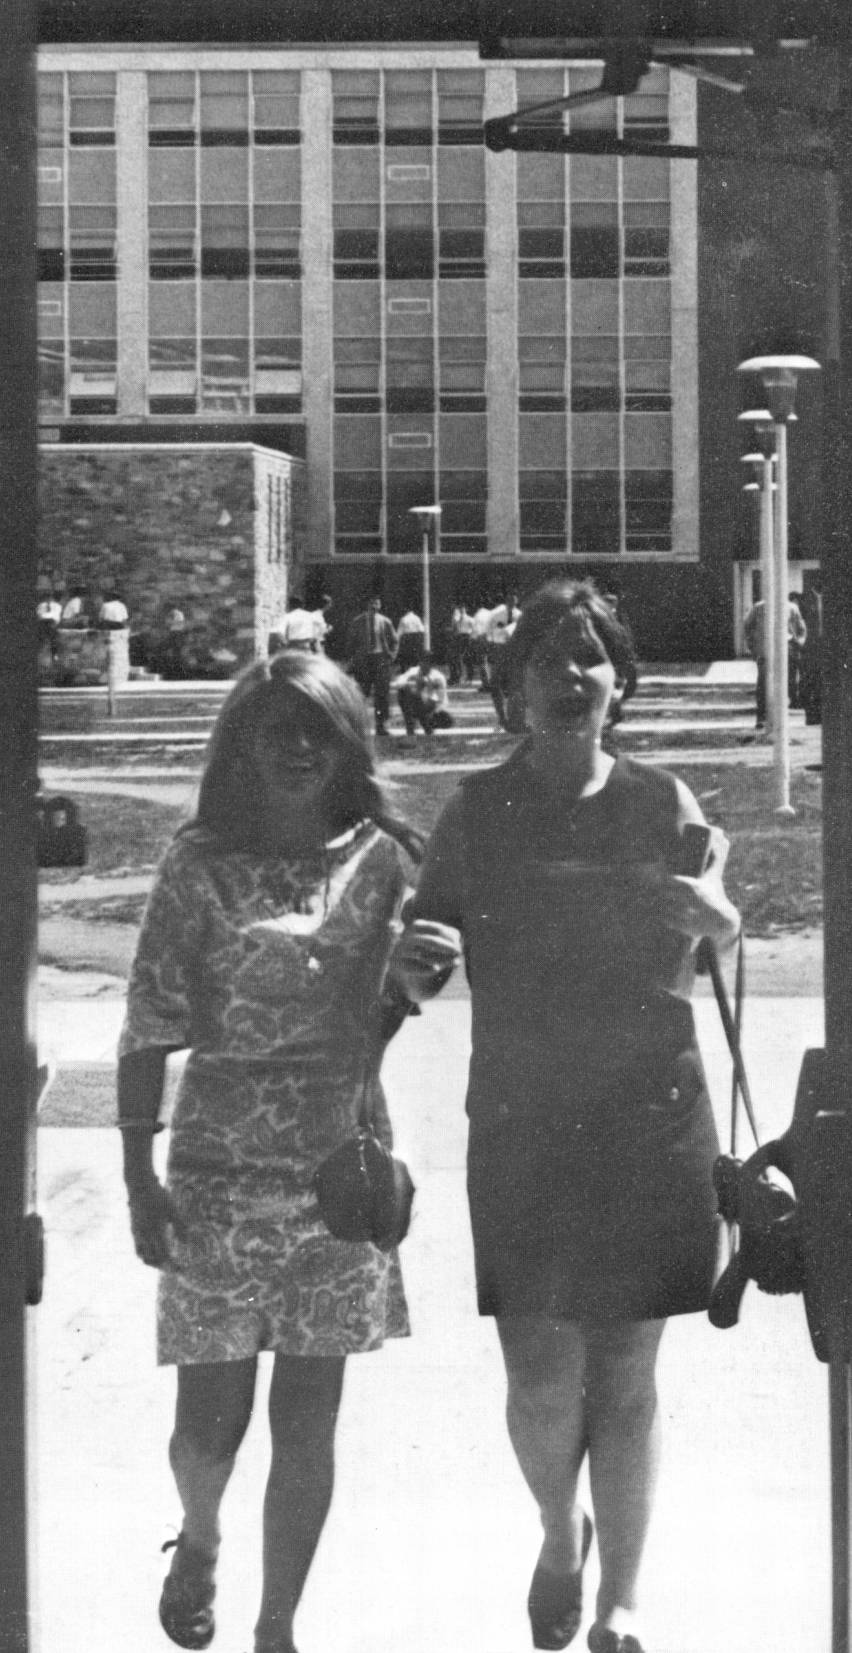 Western High School , Baltimore 1969